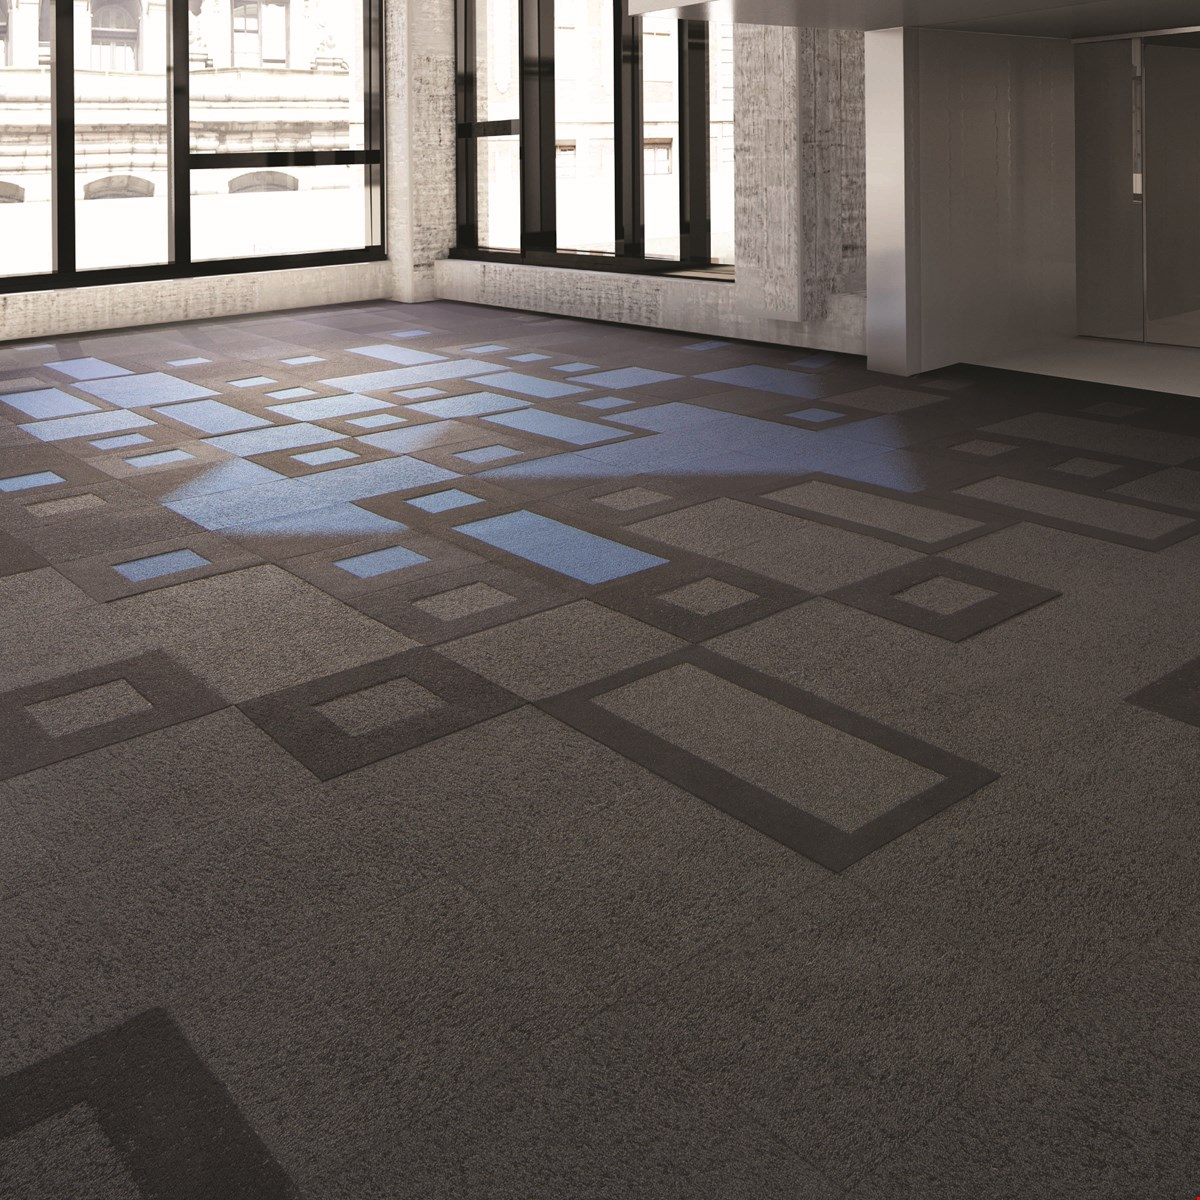 Mohawk groups topography carpet tile collection wins best of year mohawk groups topography carpet tile collection wins best of year award baanklon Images